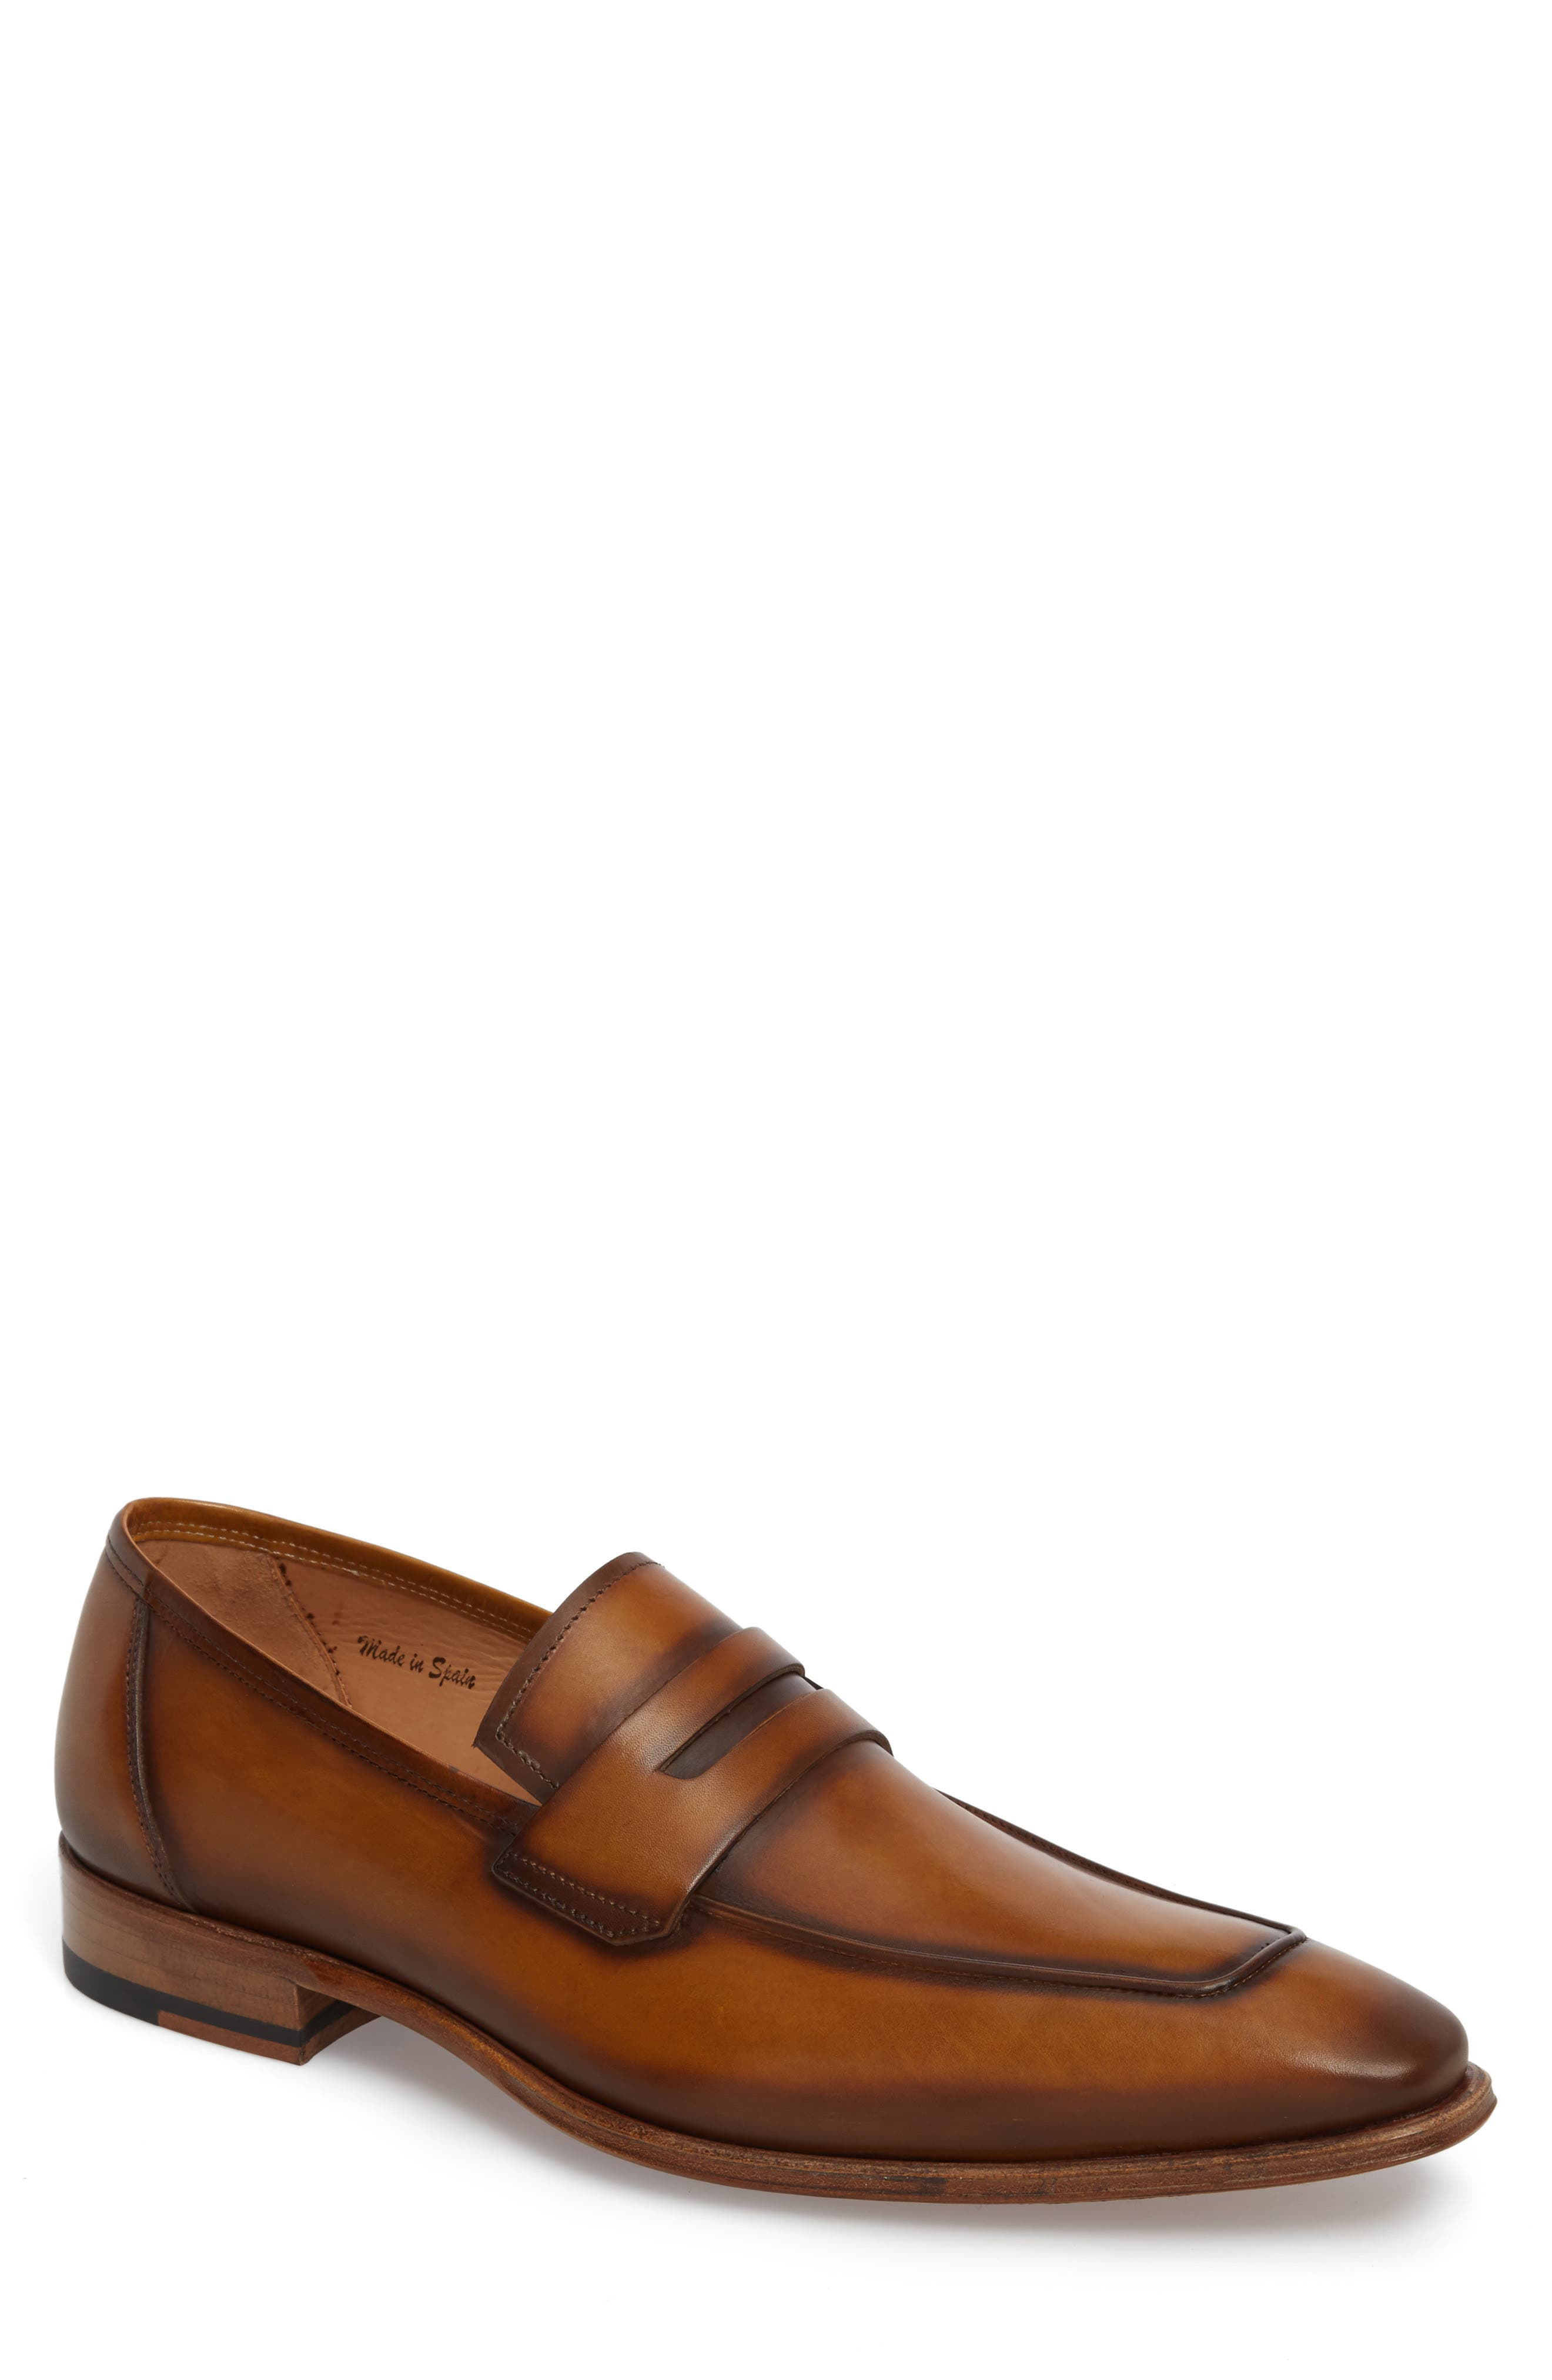 Marcus Penny Loafer,                             Main thumbnail 1, color,                             212